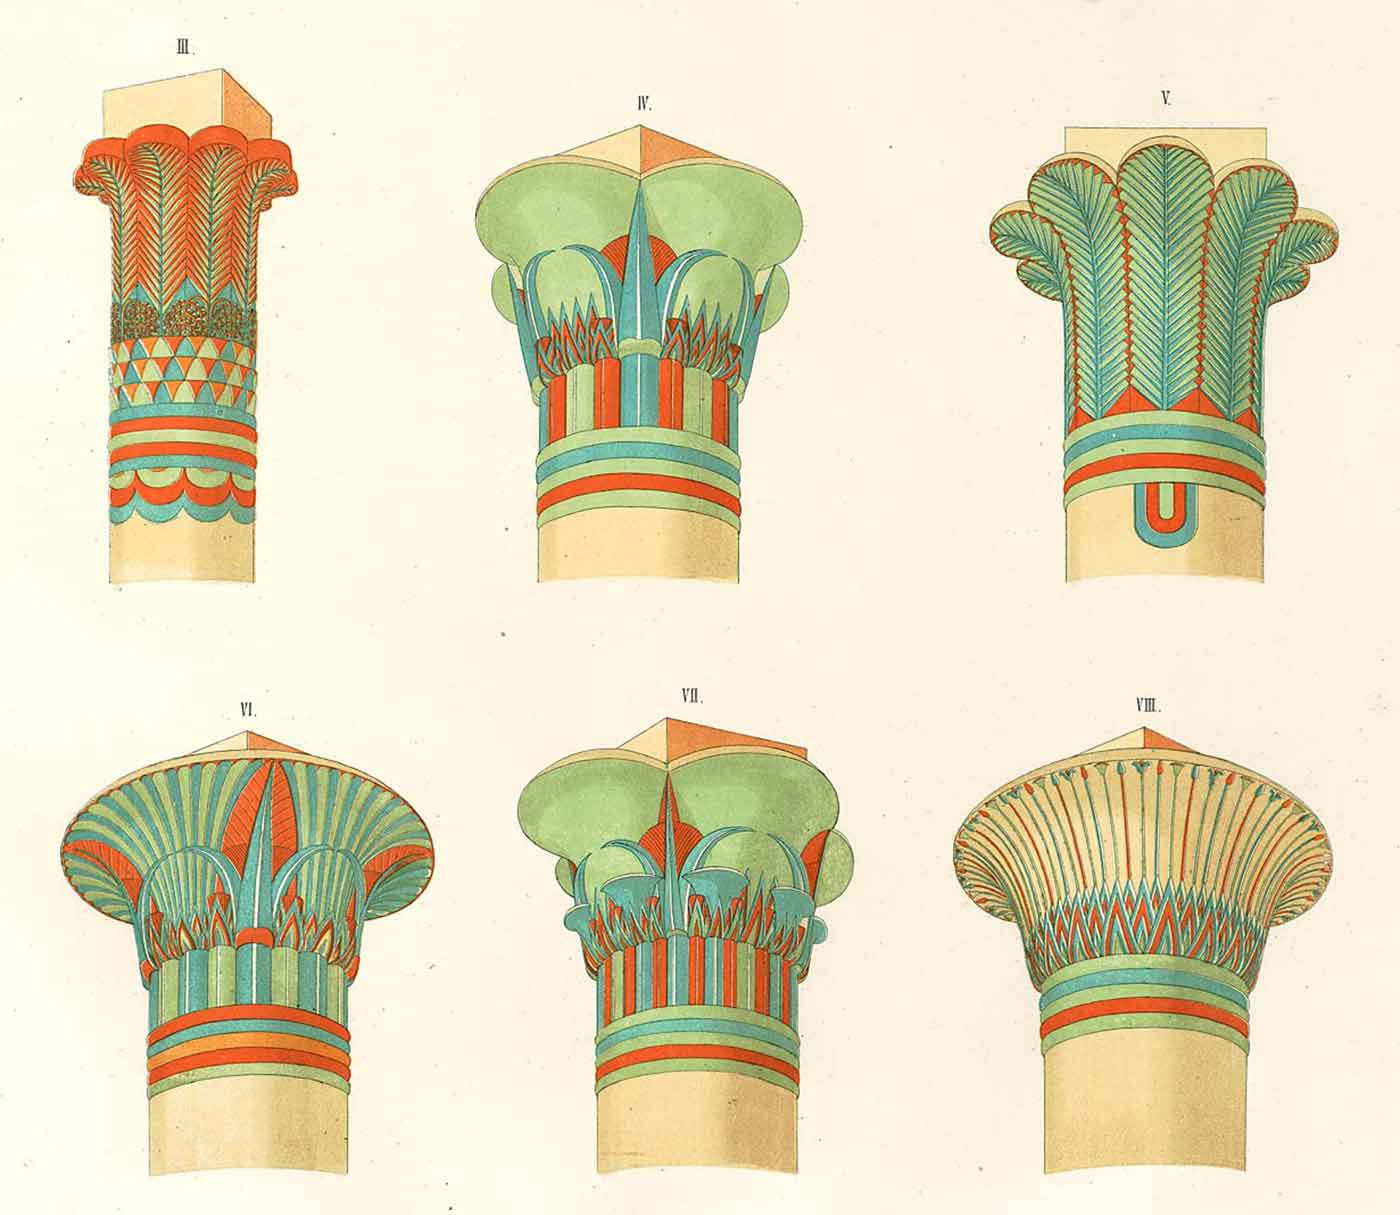 Drawings of architectural capitals from ancient Egypt.